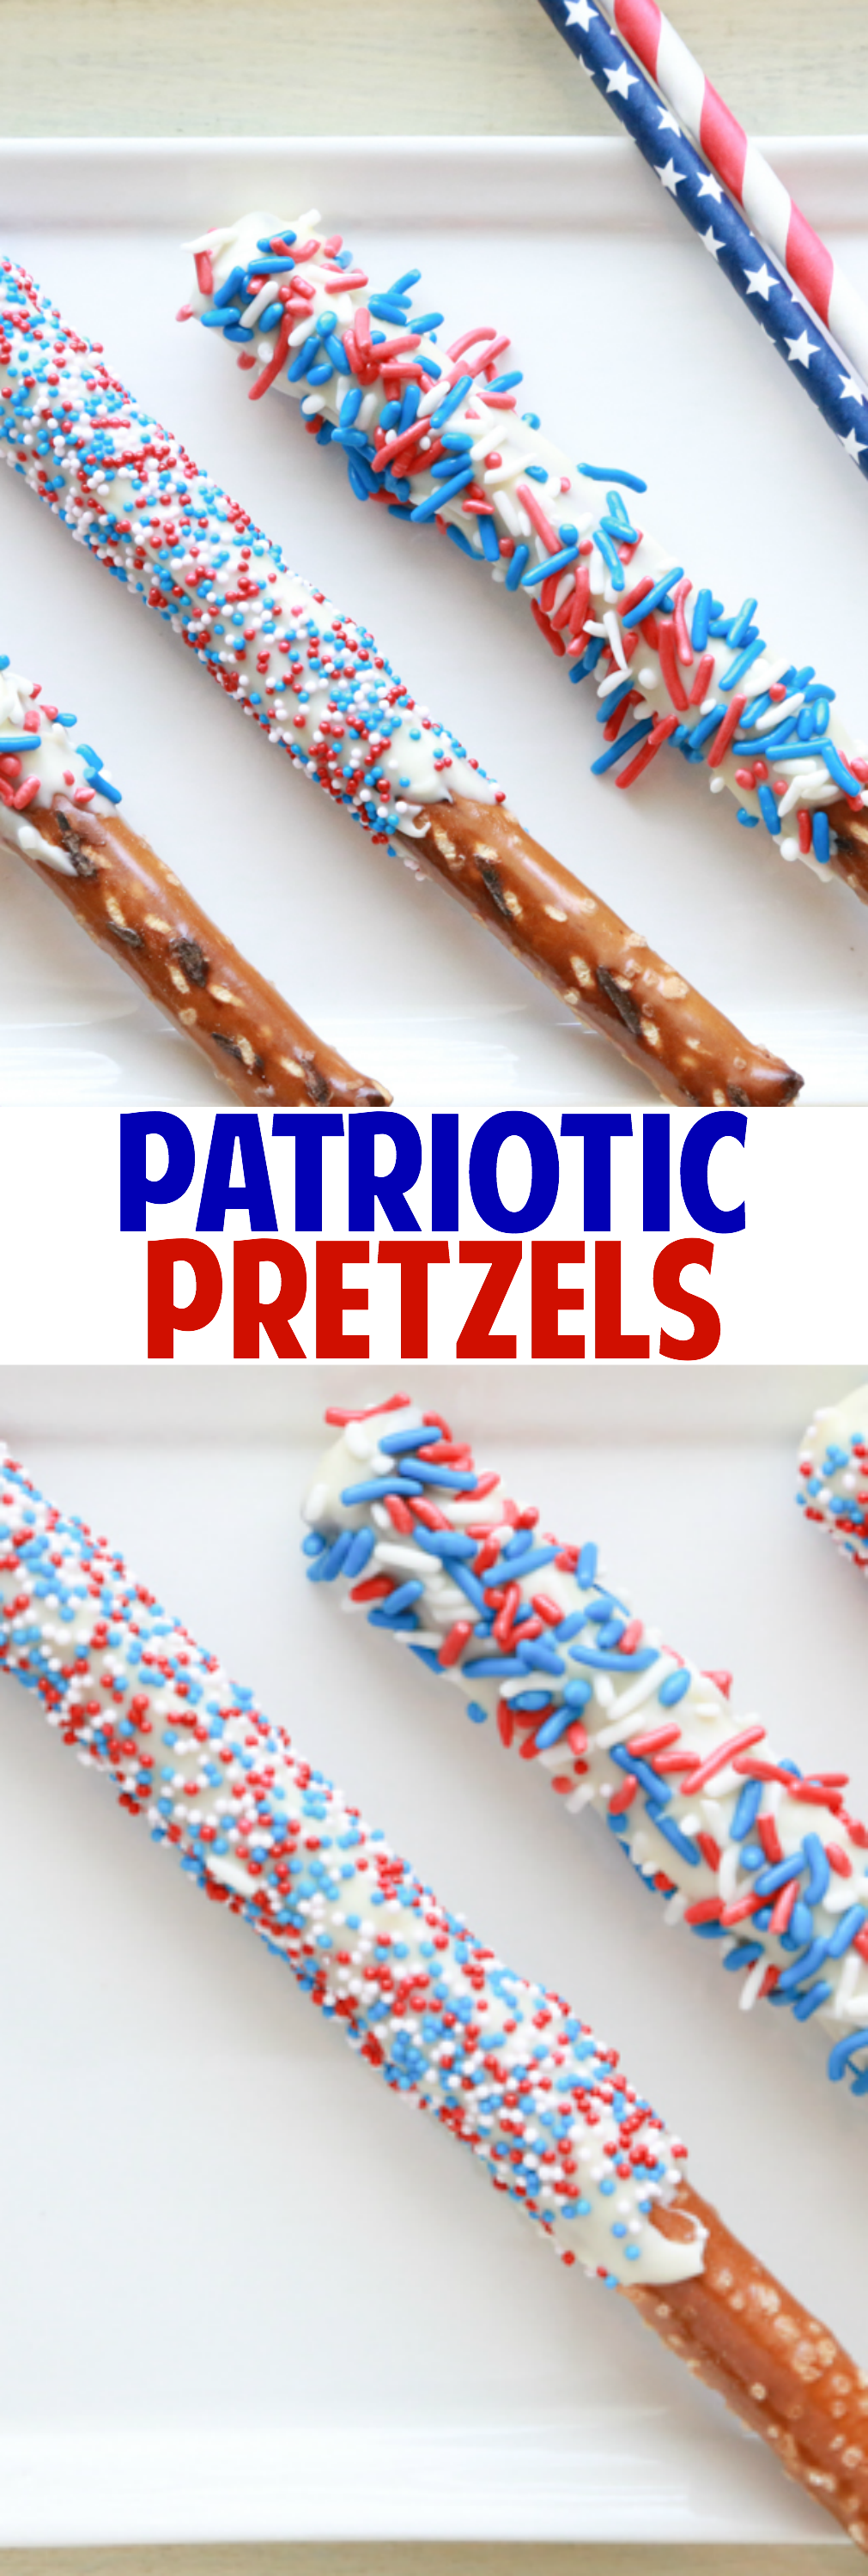 Celebrate the 4th of July with these fun and festive Patriotic Pretzels. With only three ingredients, they're the easiest treats you'll make.